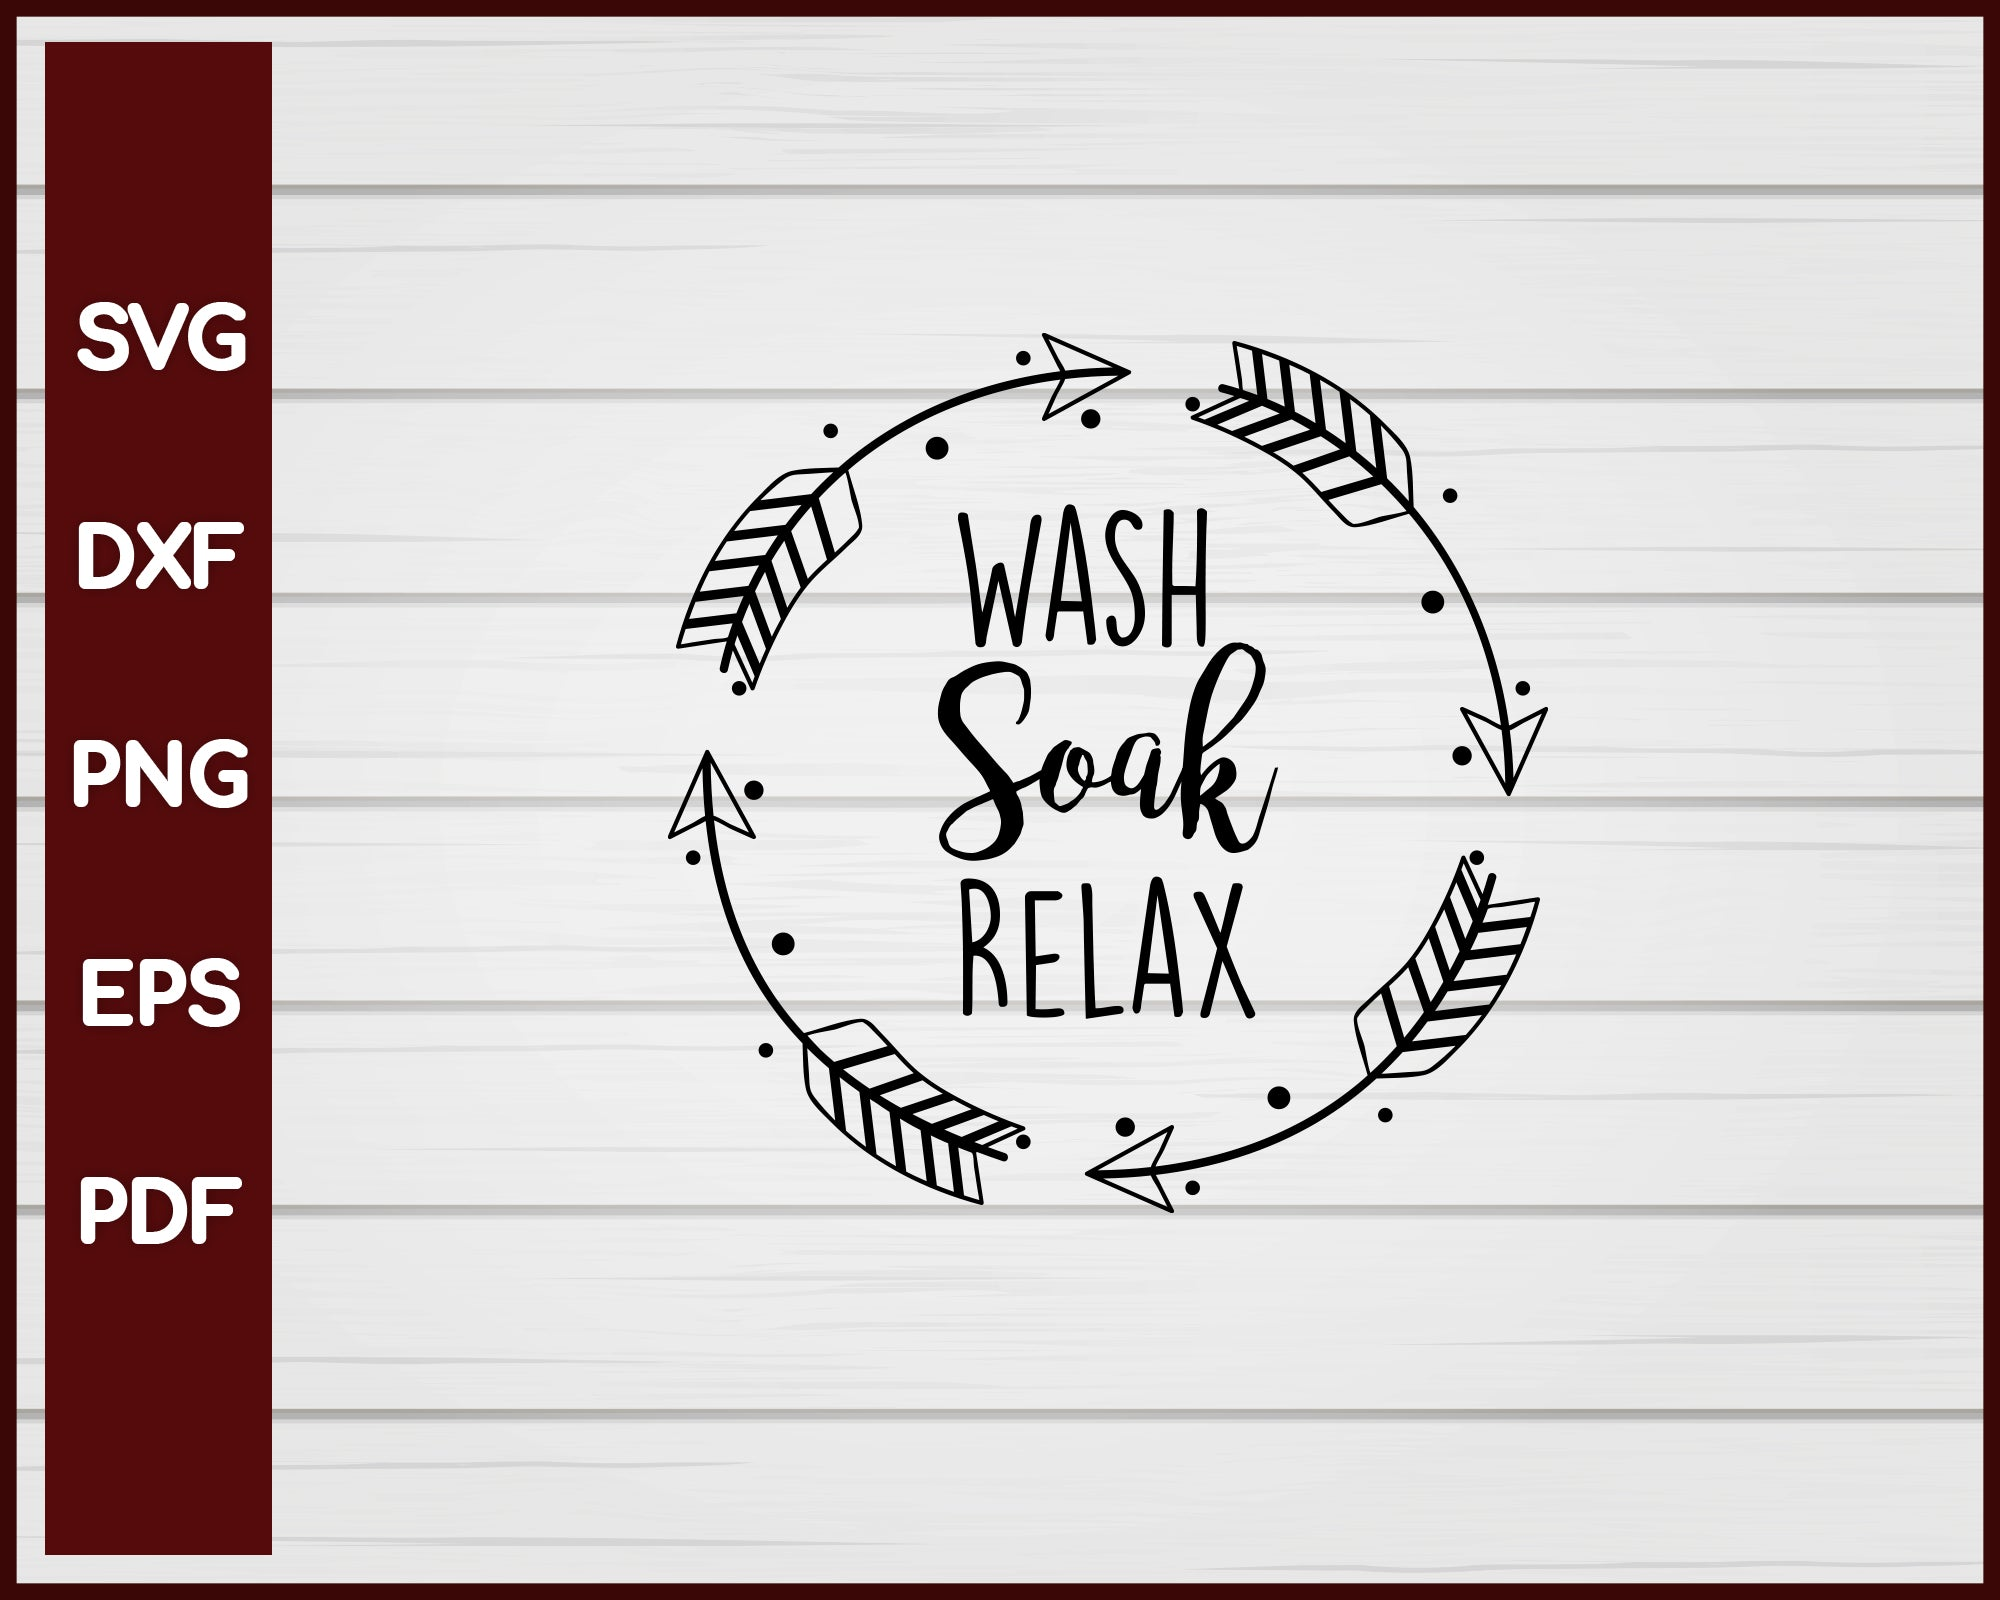 Wash Soak Relax svg